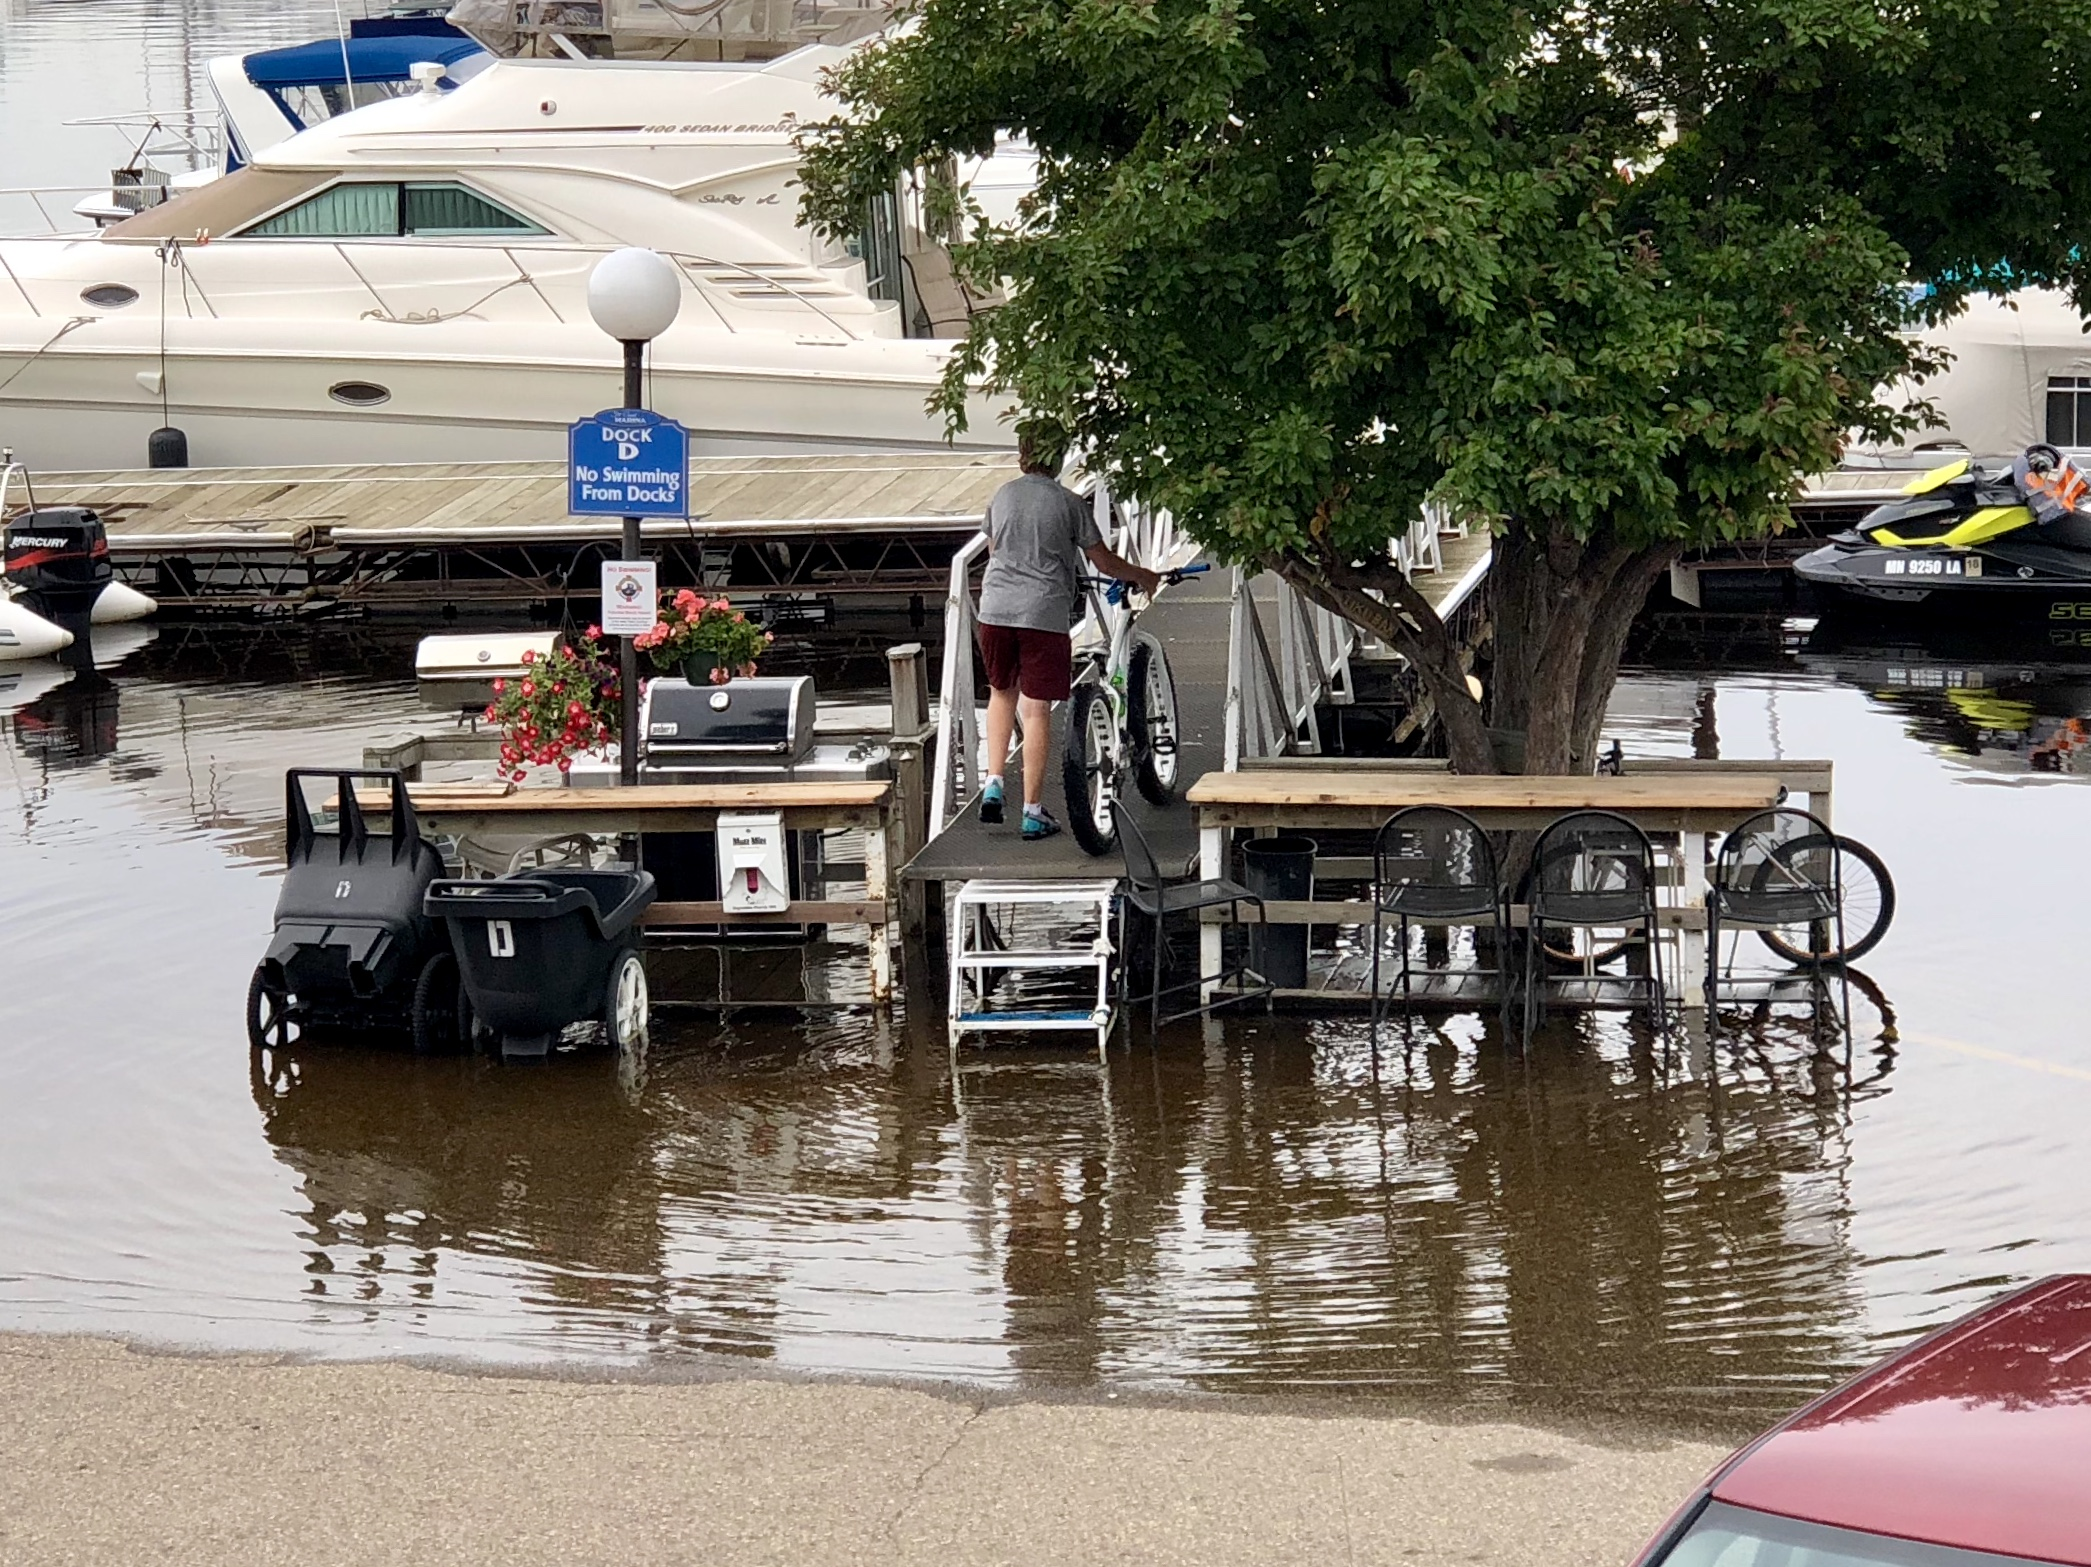 I watched this young man lift his bike up over the waterline in another section of the same parking lot, but wasn't able to get a photo until after he had waded through the water and made it up the steps.